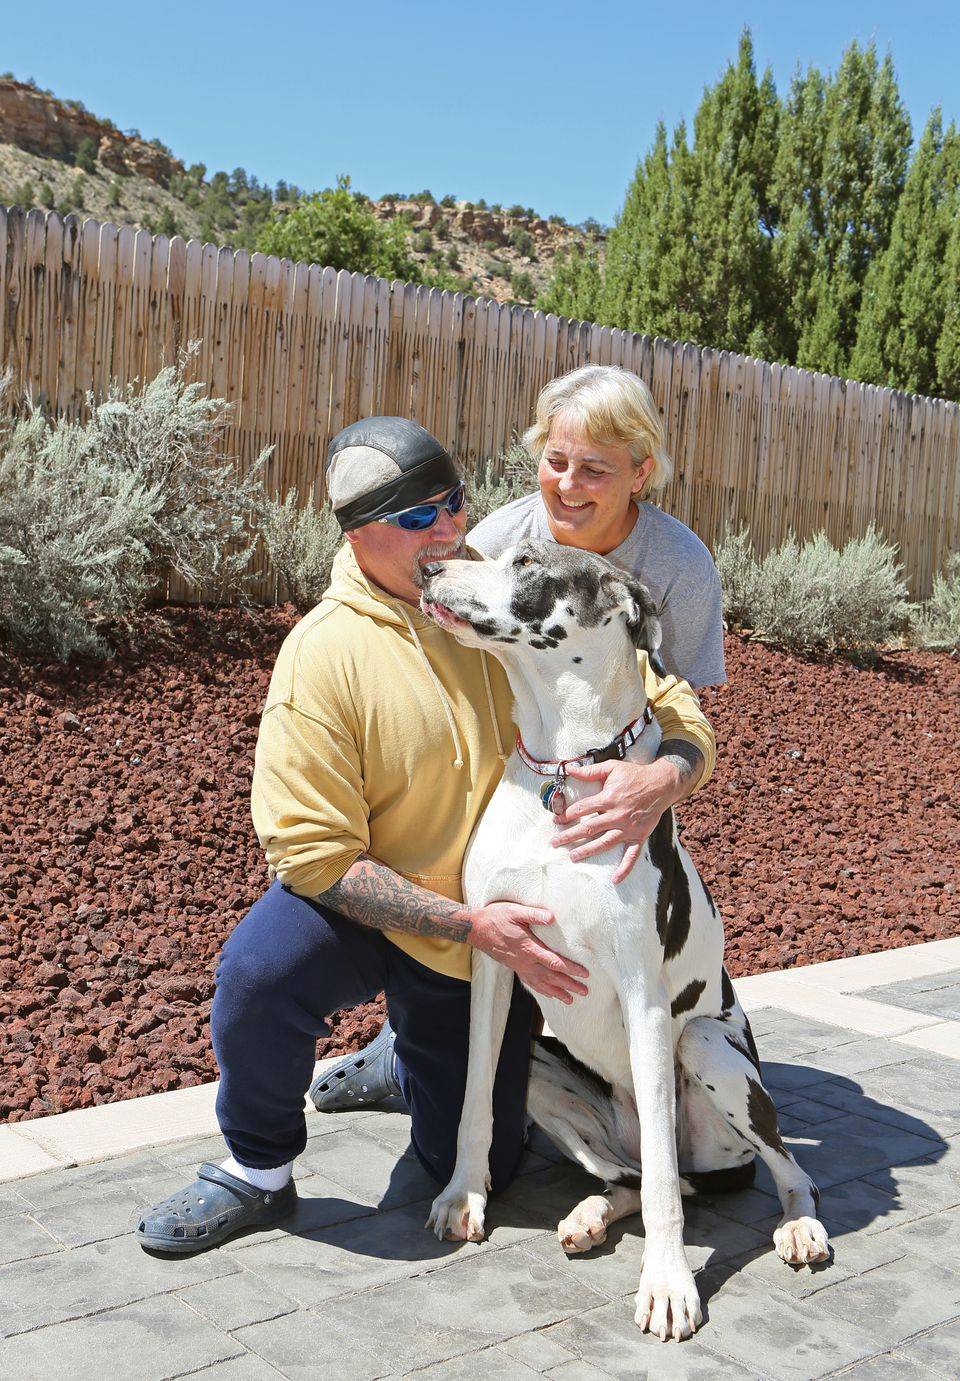 John Moore shared a moment with his wife, Cathy, and their dog outside their Utah home on Thursday.